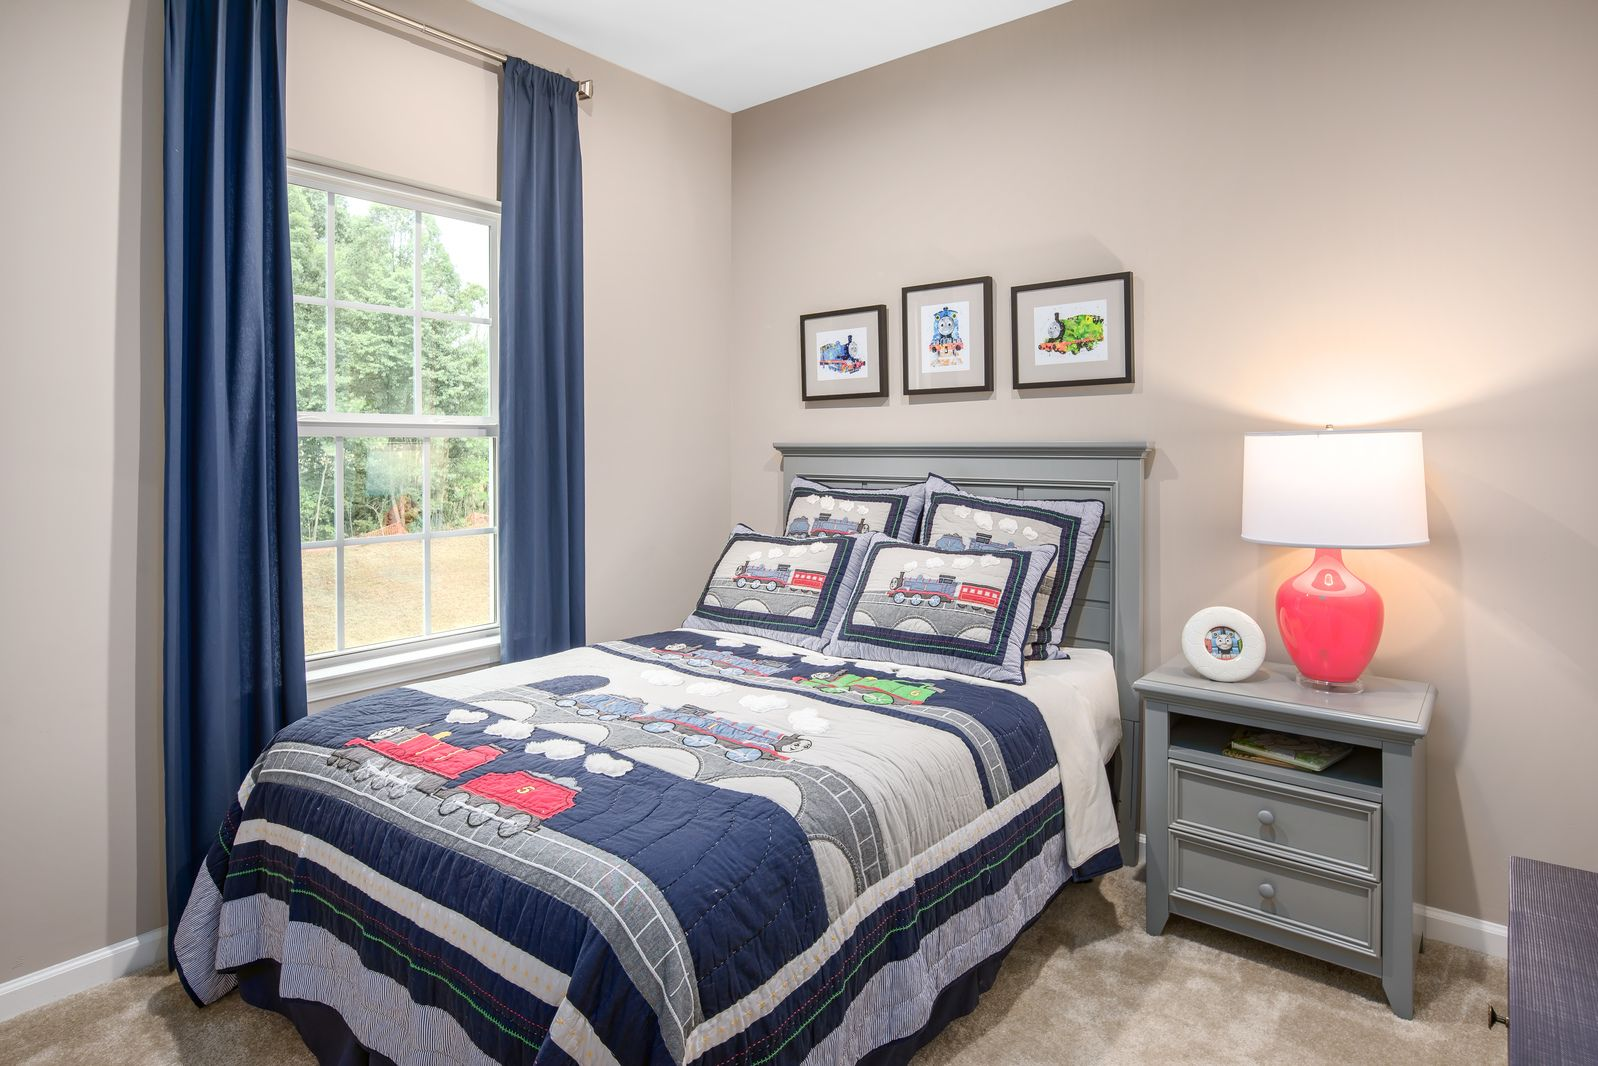 Bedroom featured in the Mozart 2-Car Garage By Ryan Homes in Baltimore, MD